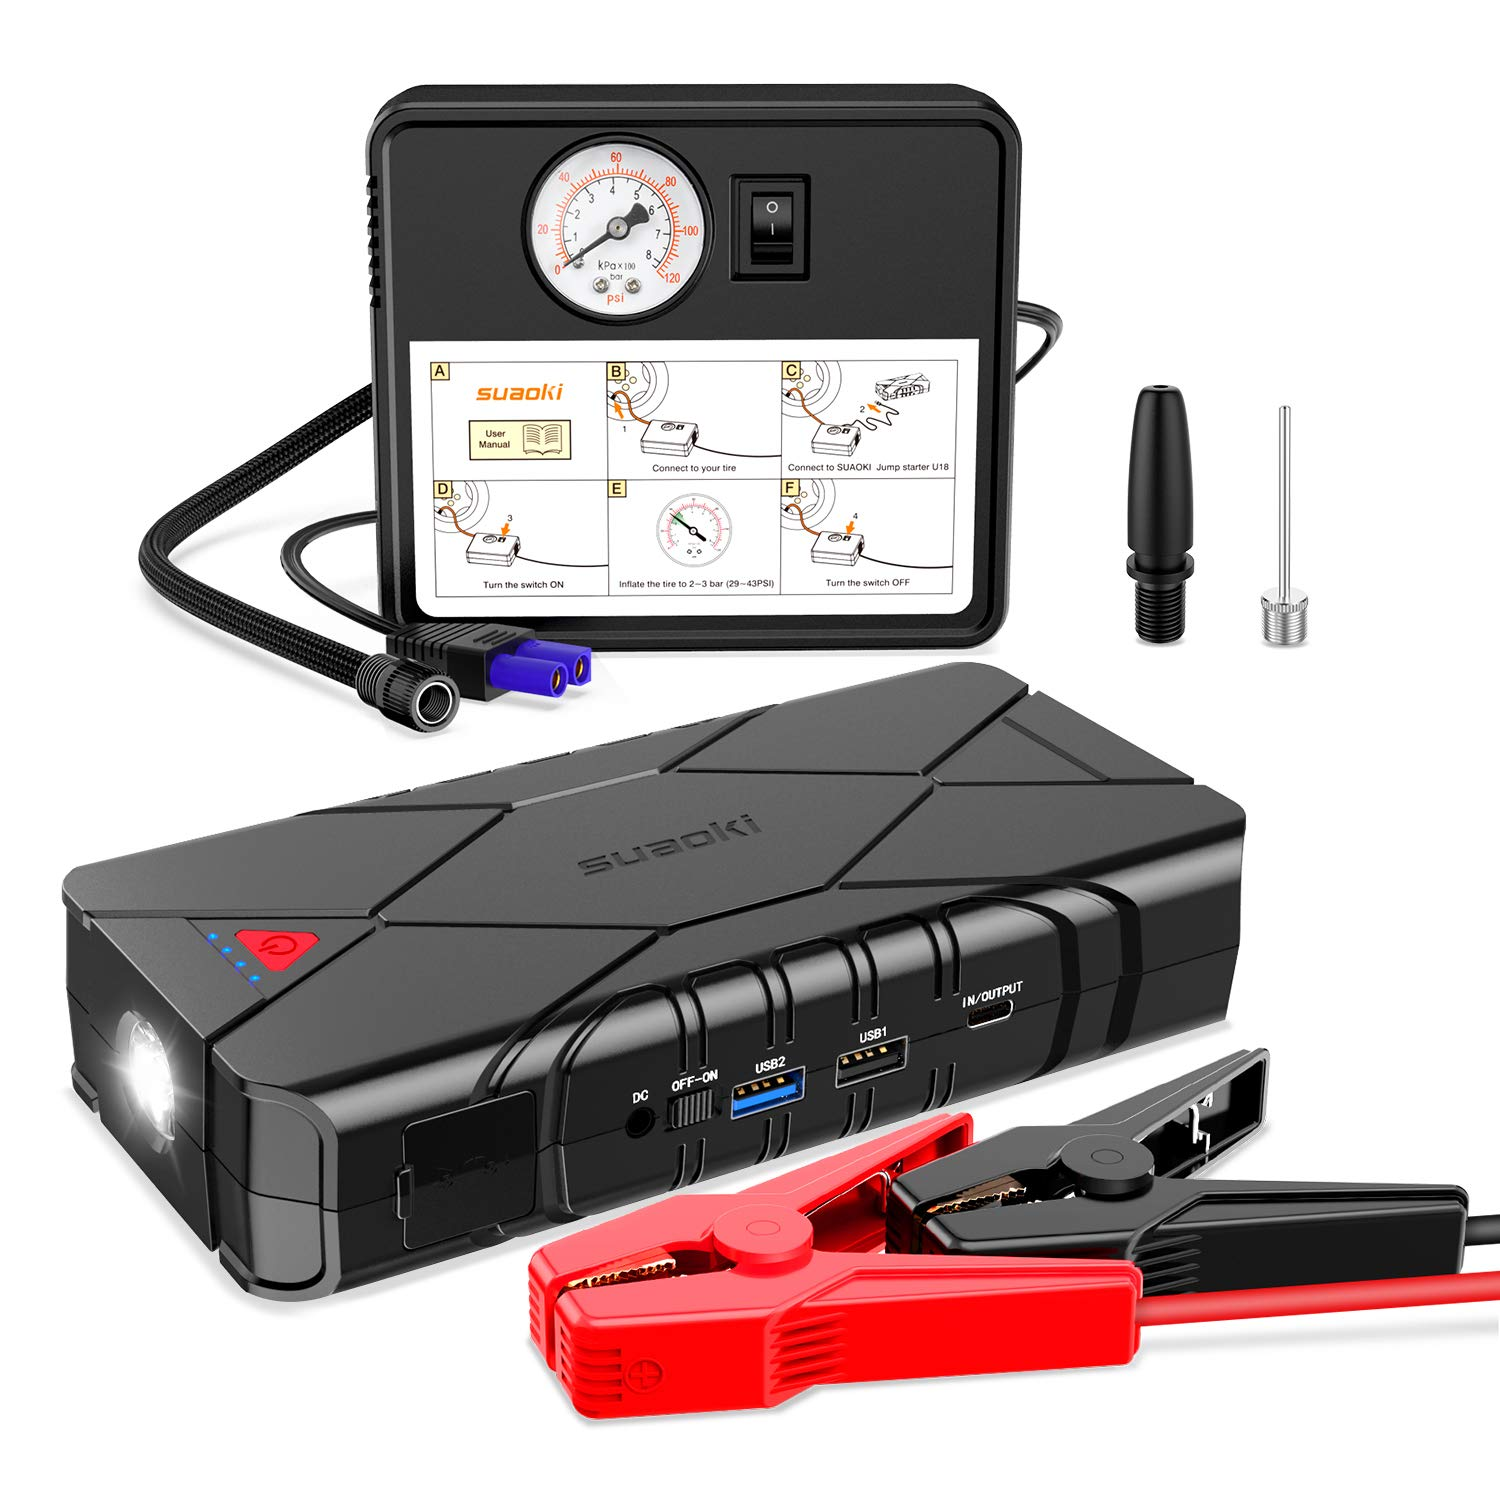 SUAOKI 1200A Peak Car Jump Starter Battery Pack 16000mAh